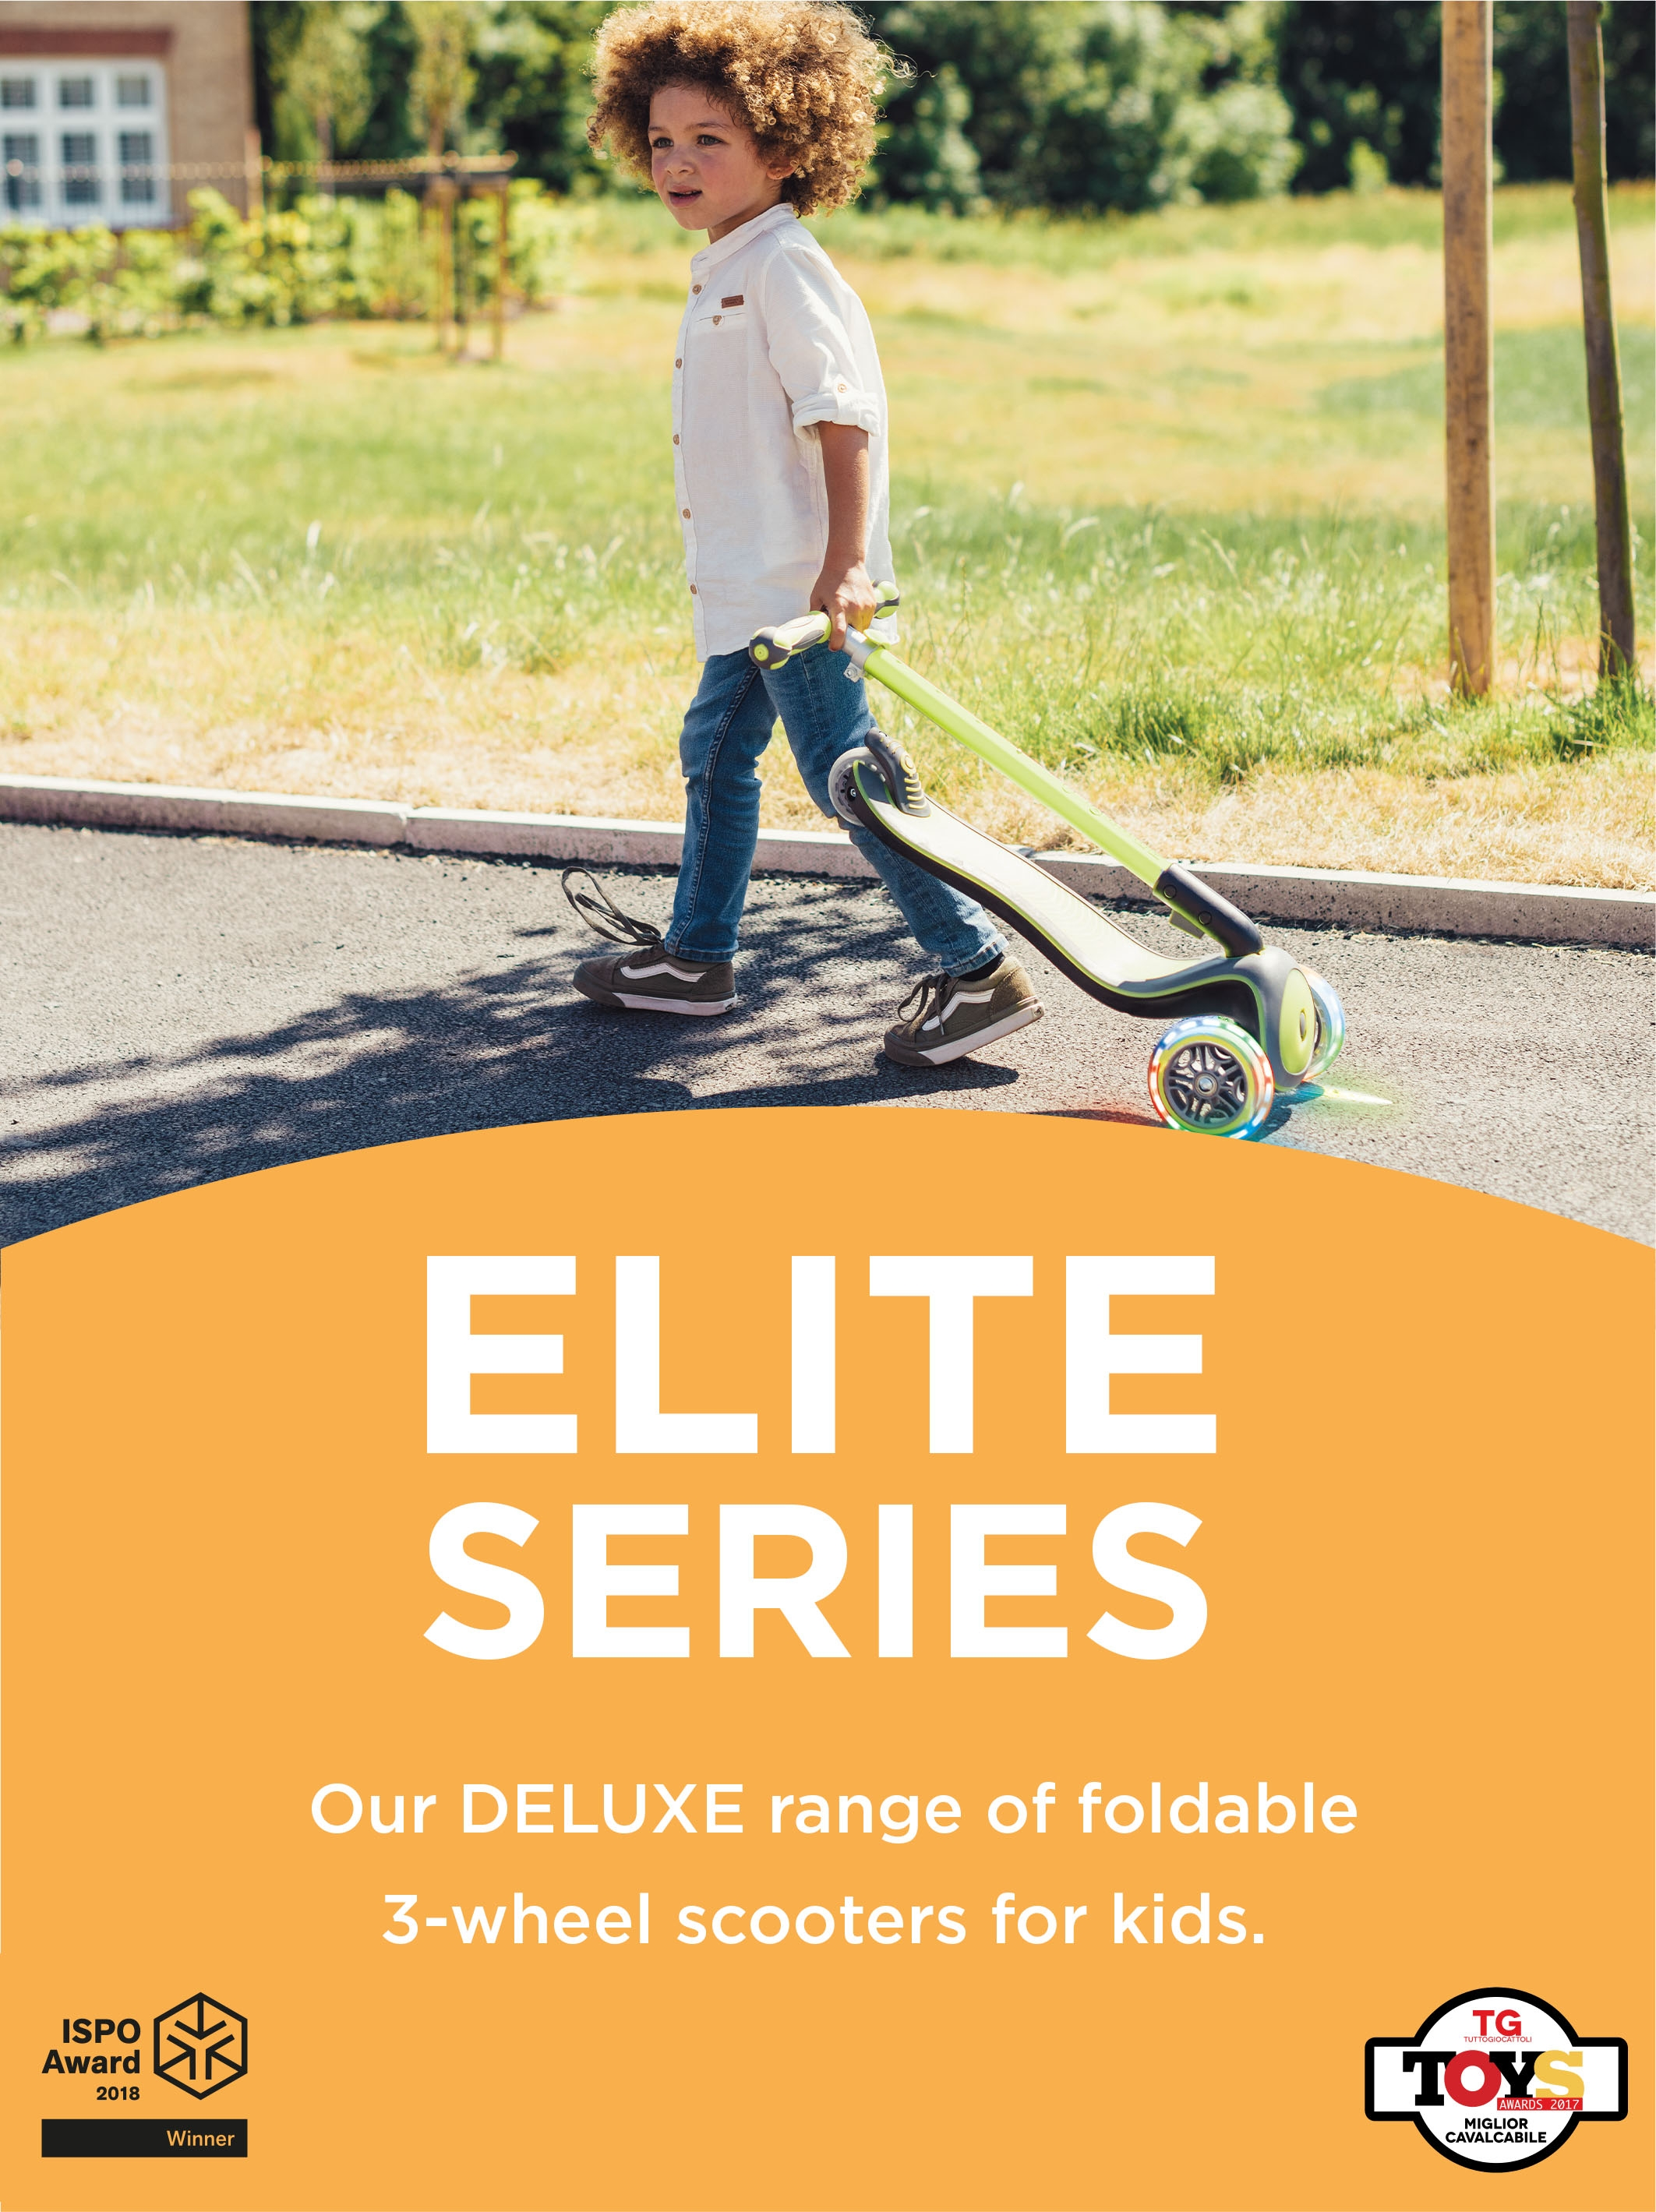 Our DELUXE range of foldable 3-wheel scooters for kids.